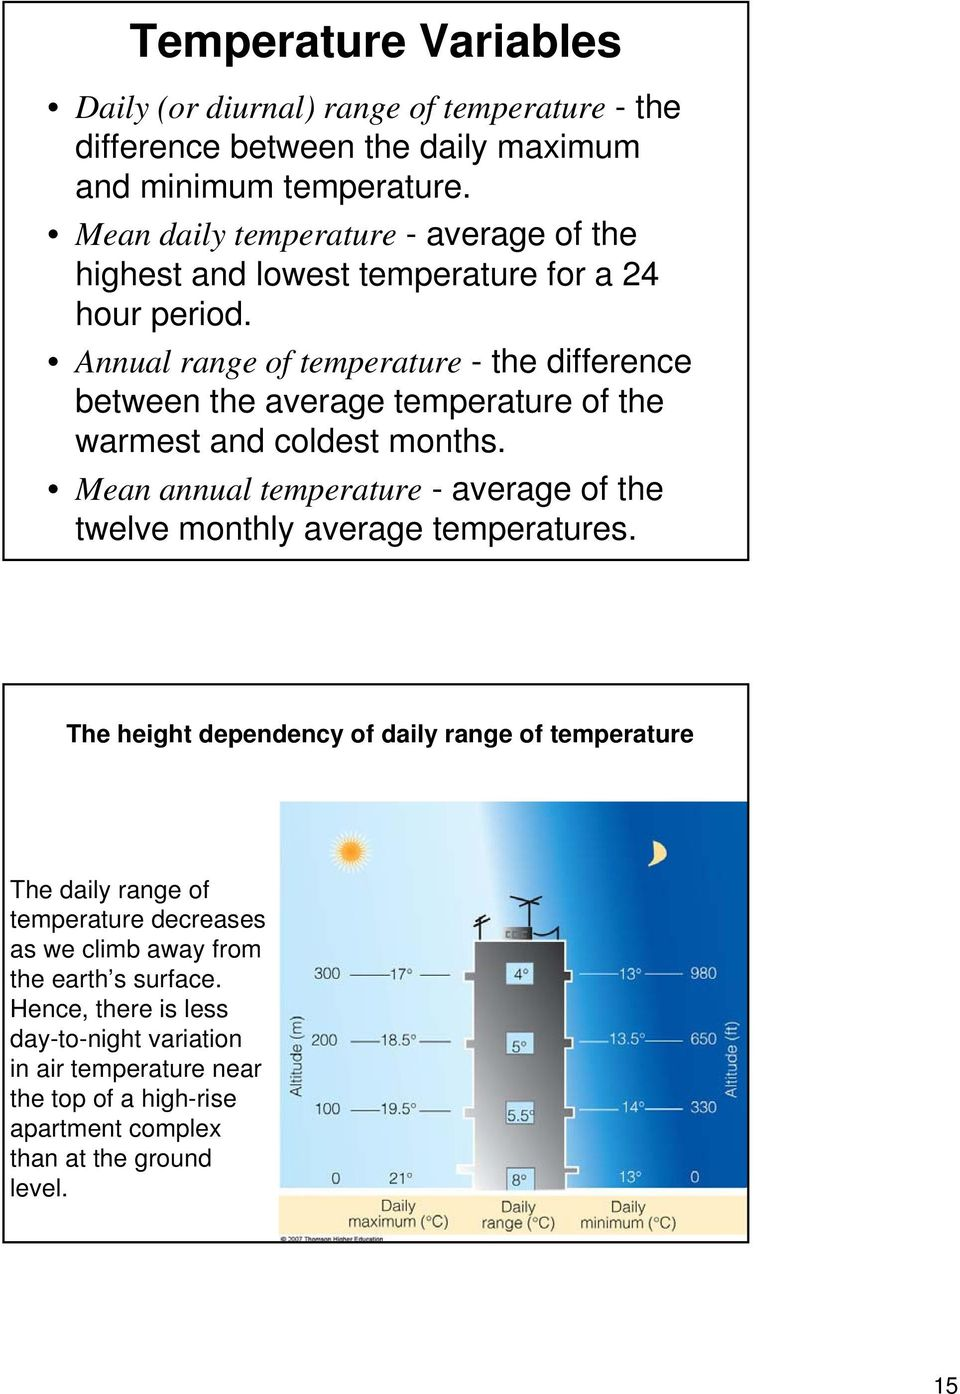 Annual range of temperature - the difference between the average temperature of the warmest and coldest months.